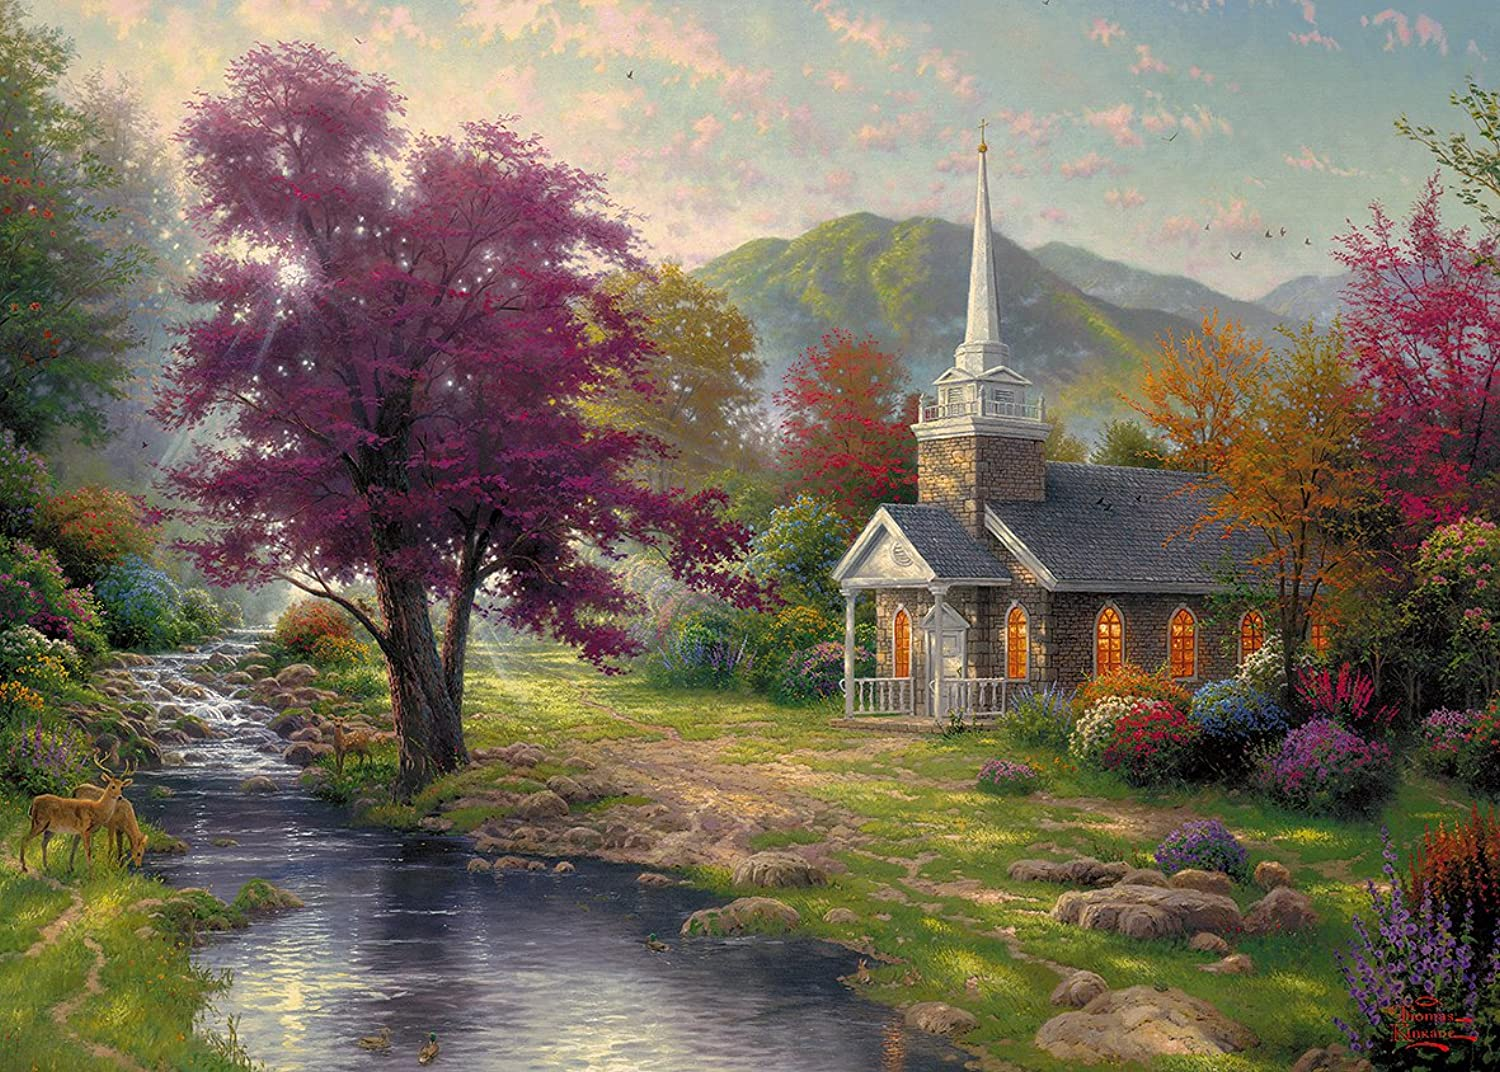 Gibsons Streams of Living Water Jigsaw Puzzle by Thomas Kinkade (1000 Pieces)